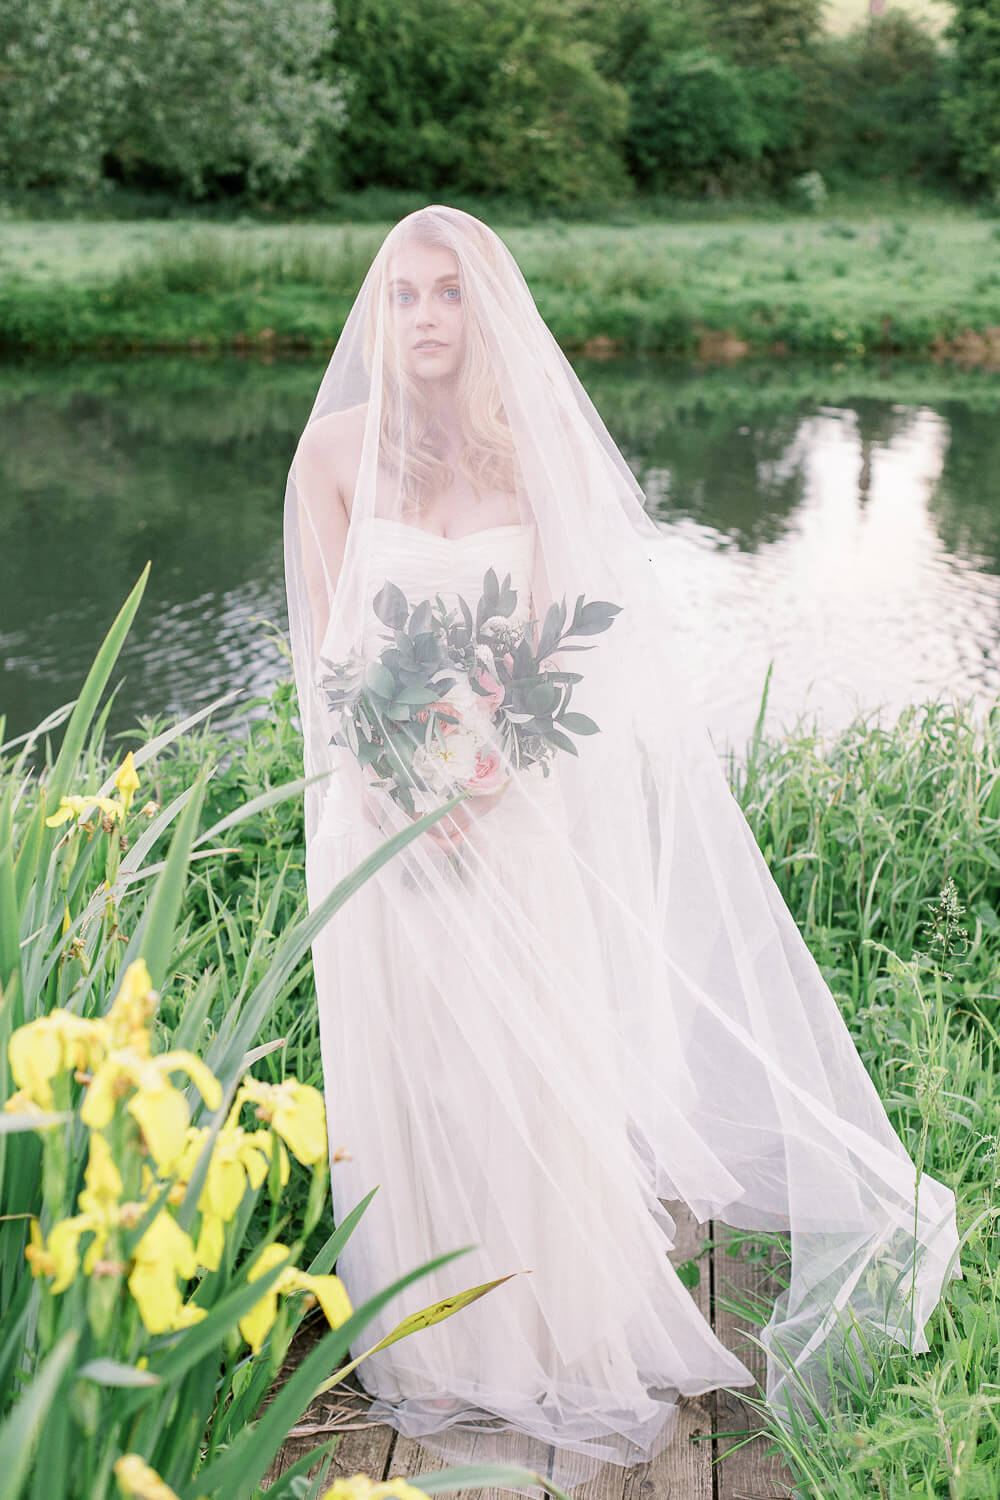 fine art bride photo session by the river